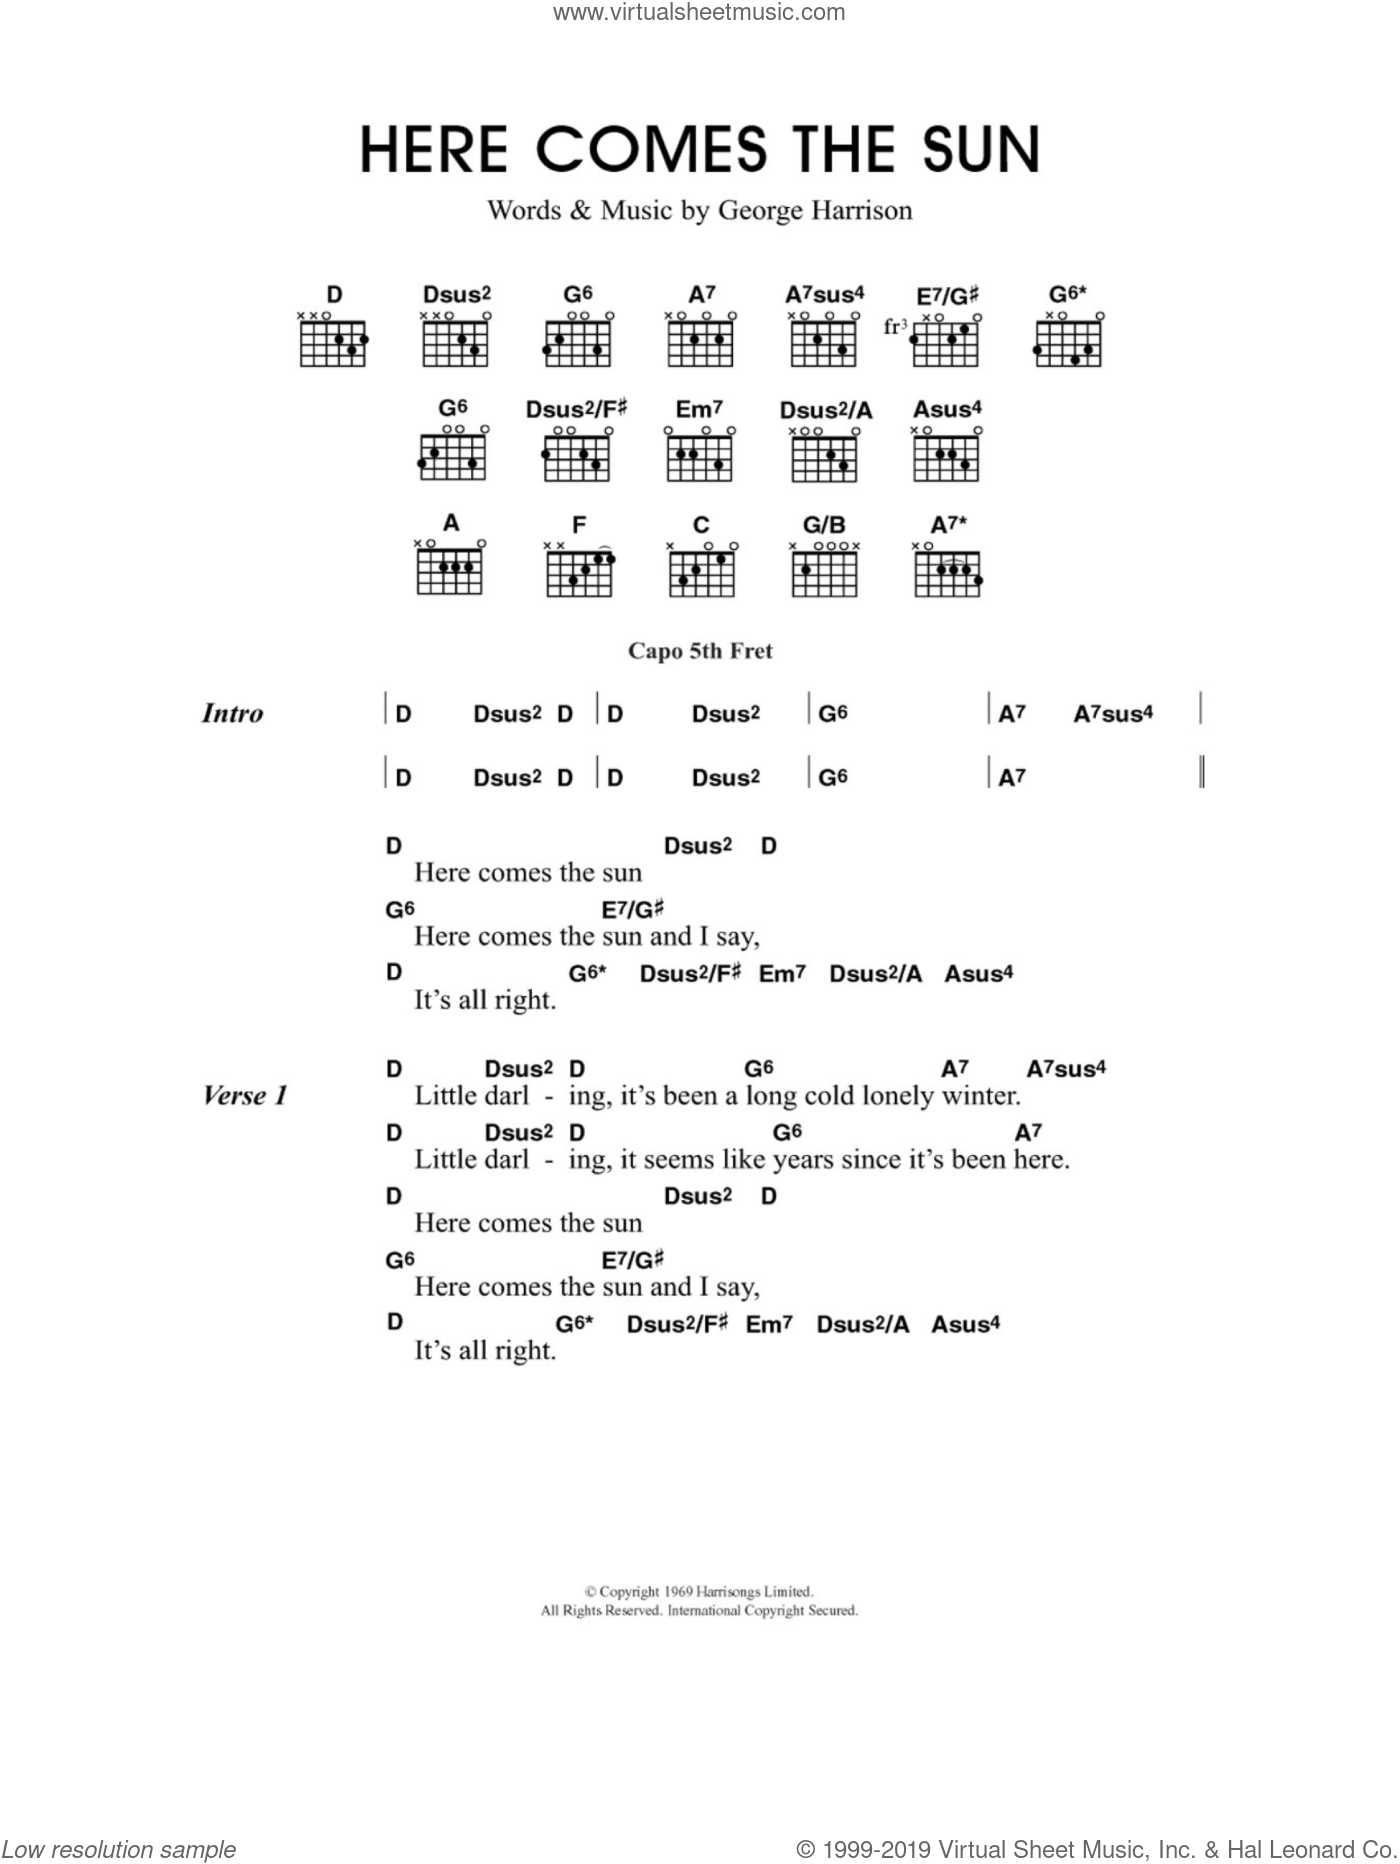 Guitar guitar chords of tadhana : drum tabs for radioactive Tags : drum tabs for radioactive guitar ...